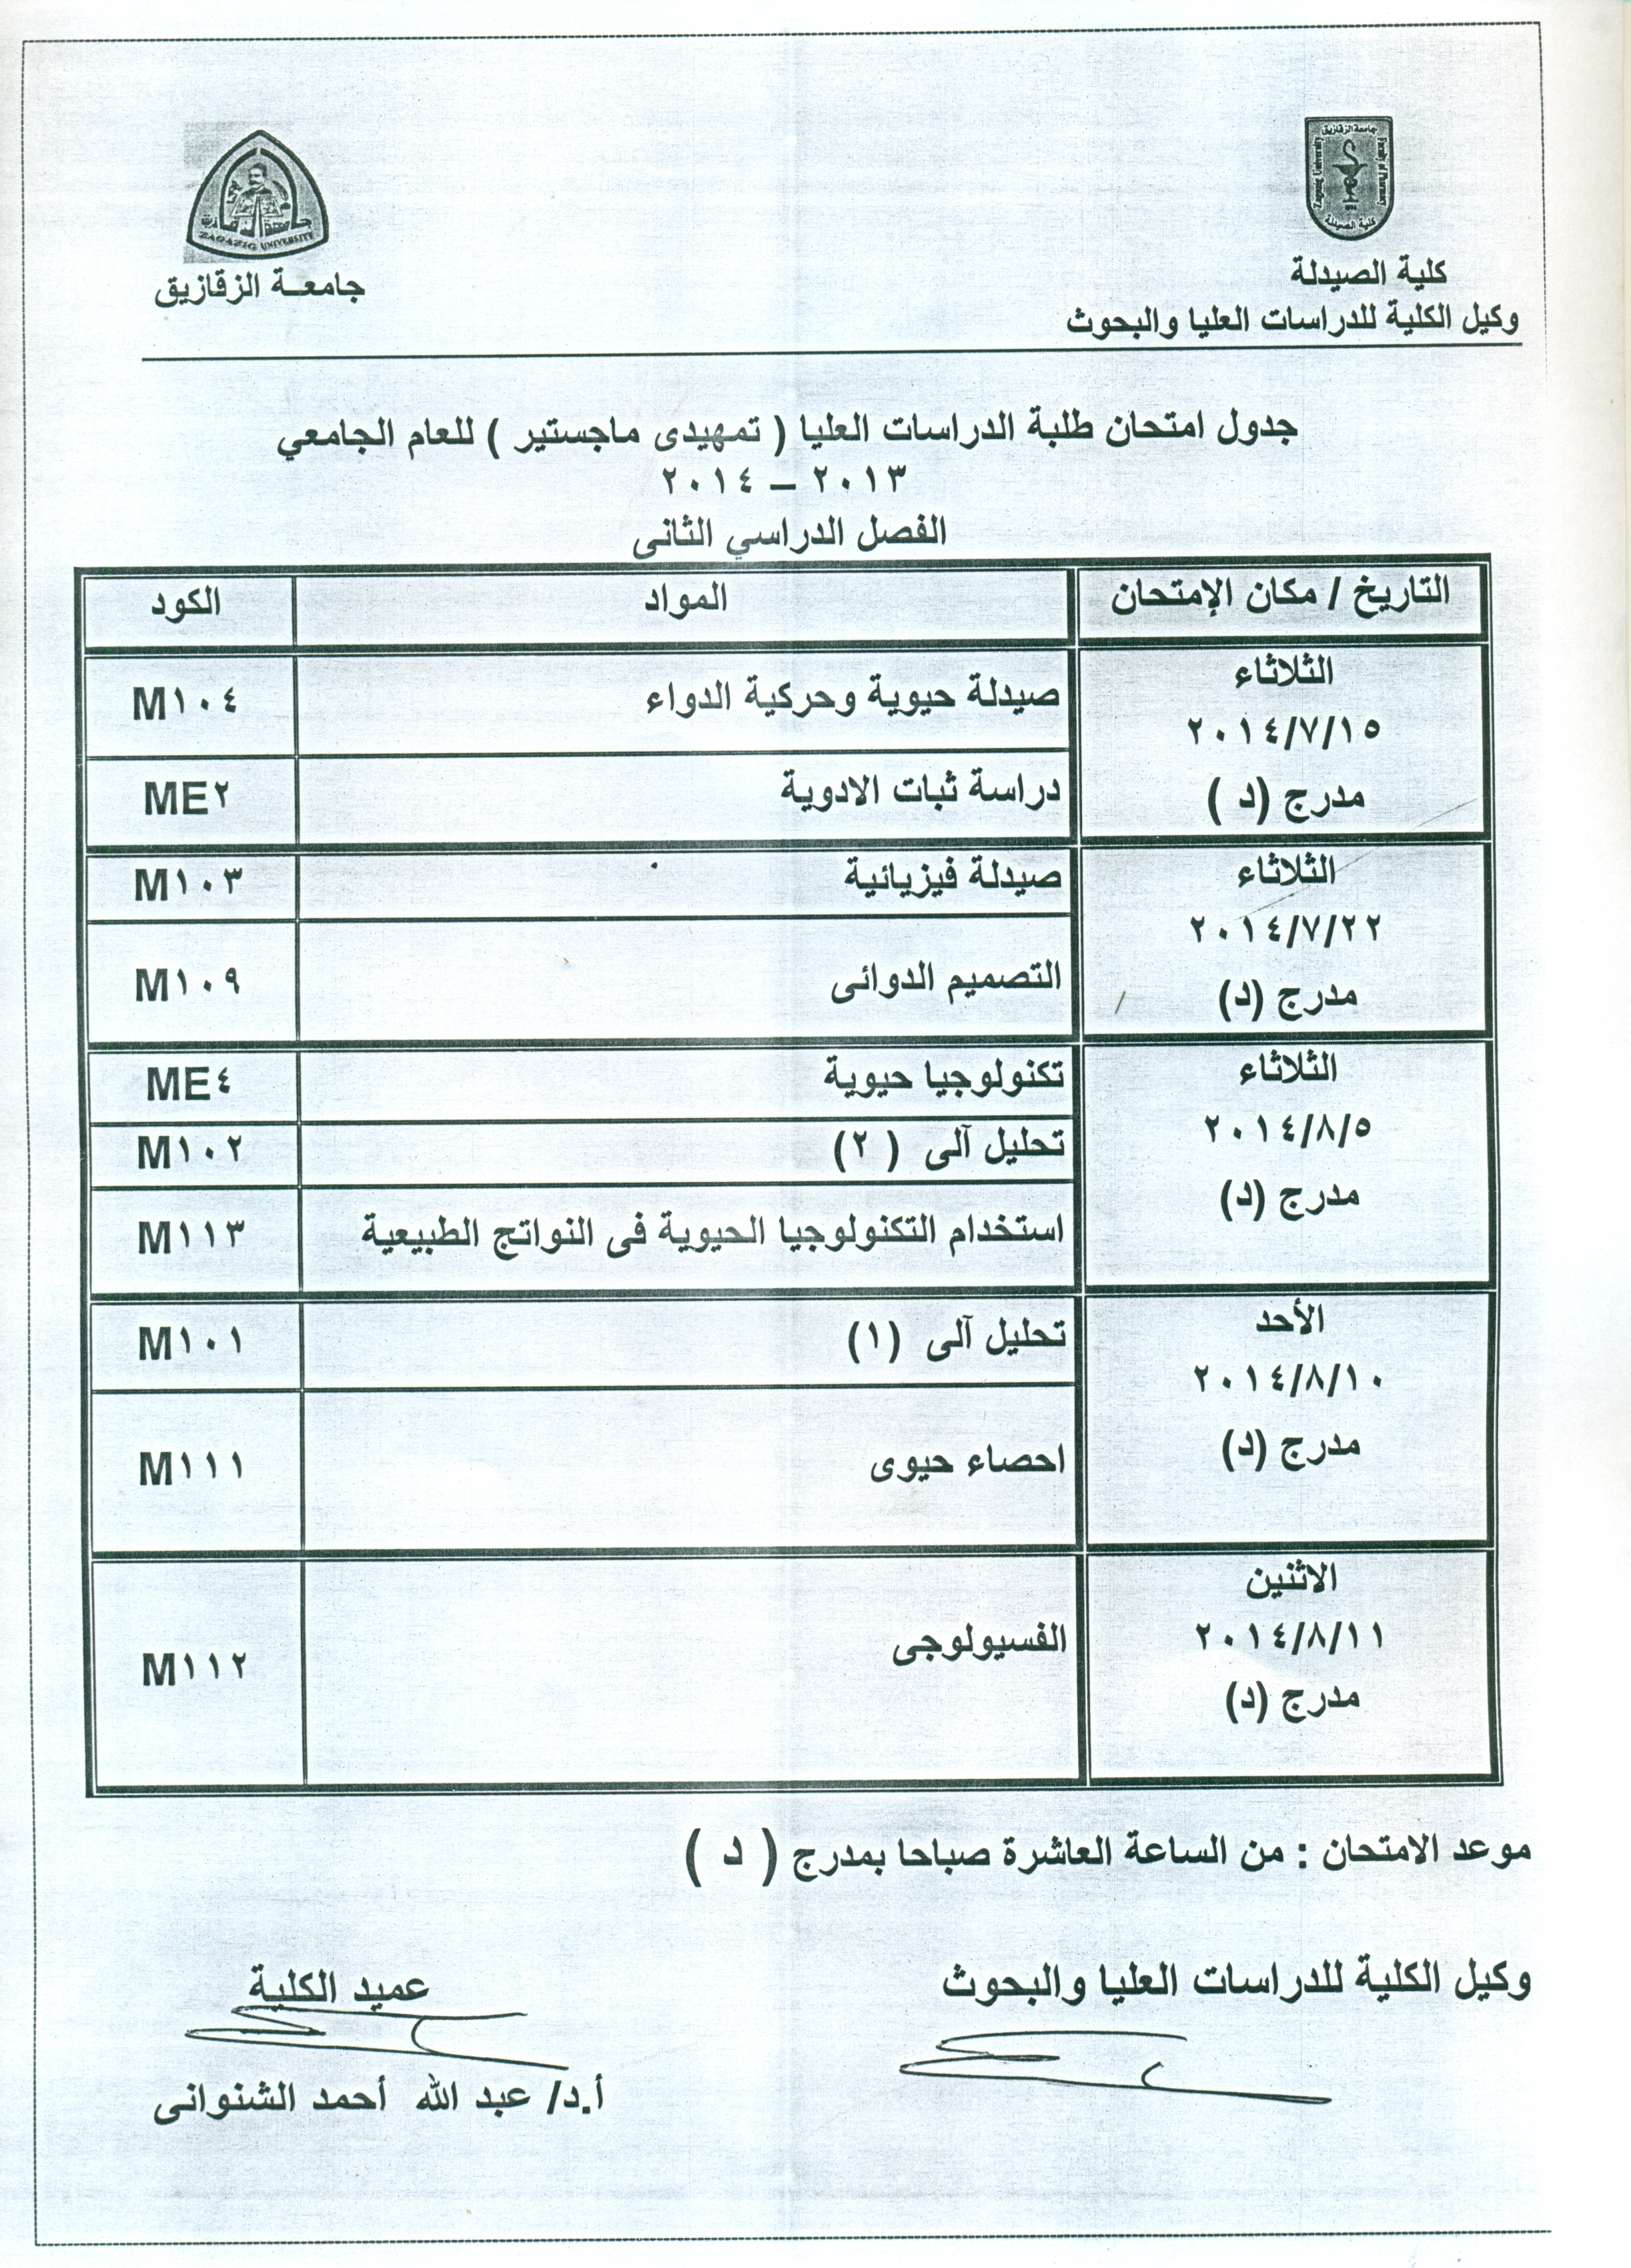 Exam table graduate students (Preliminary MA) for the academic year 2013/2014 second semester